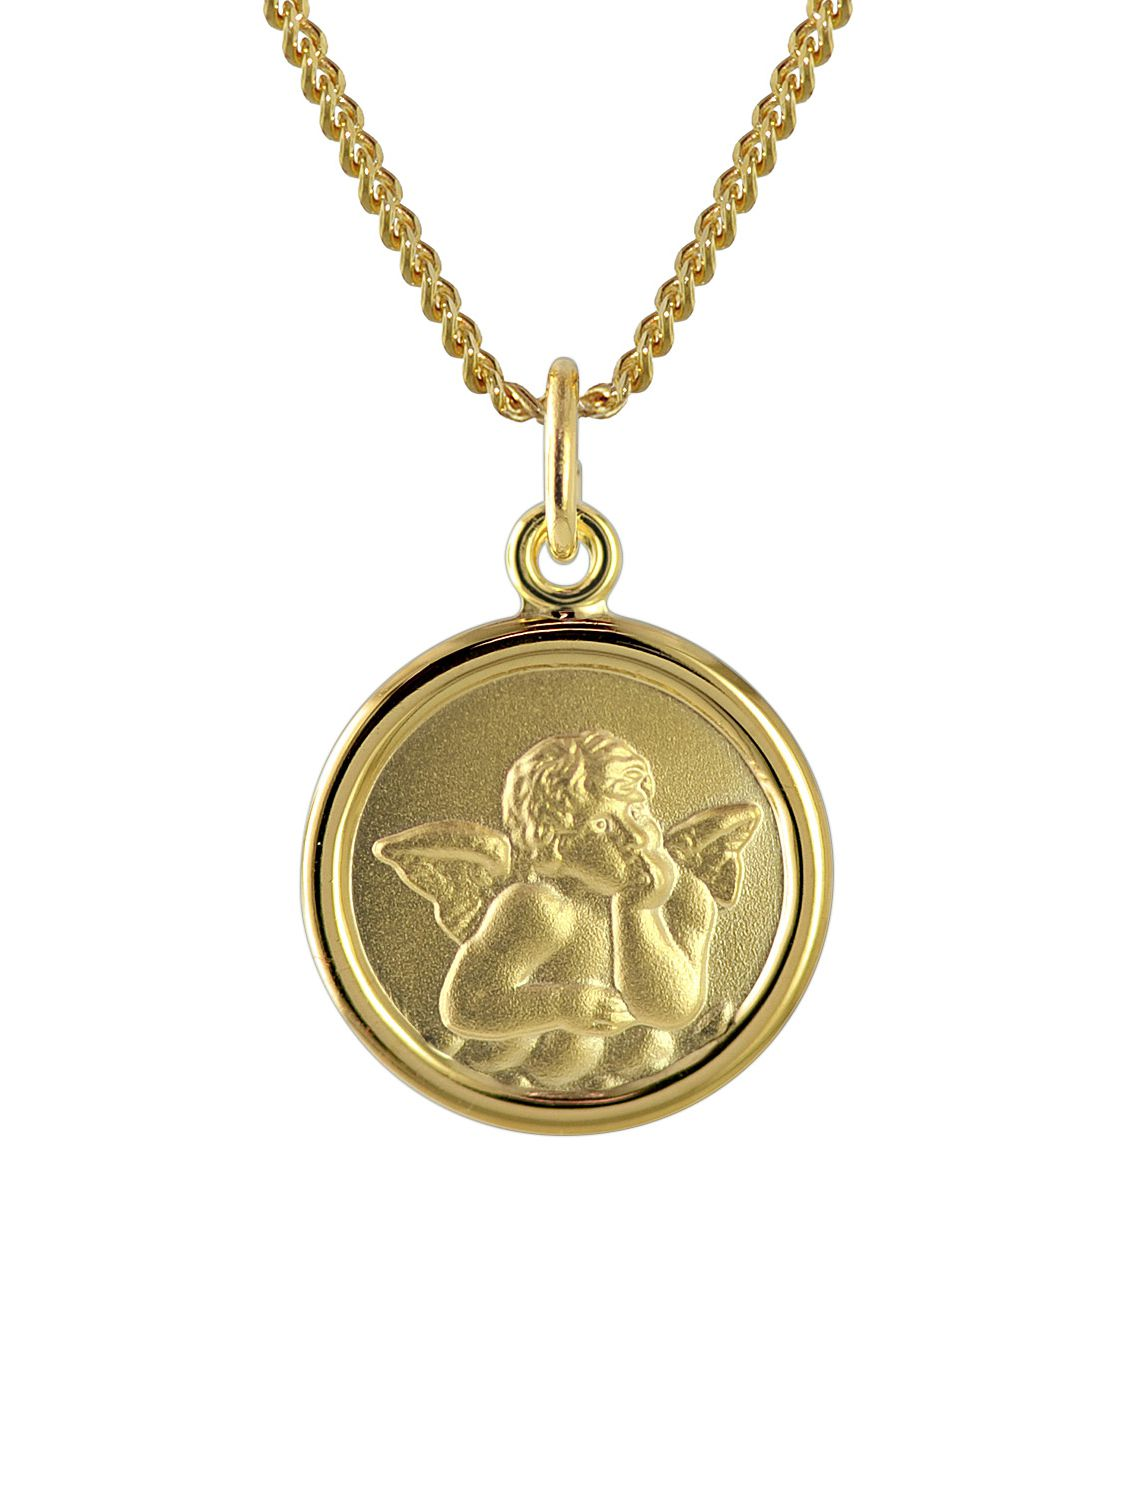 trendor gold engel anh nger f r kinder an 40 cm goldplattierter kette 73426. Black Bedroom Furniture Sets. Home Design Ideas